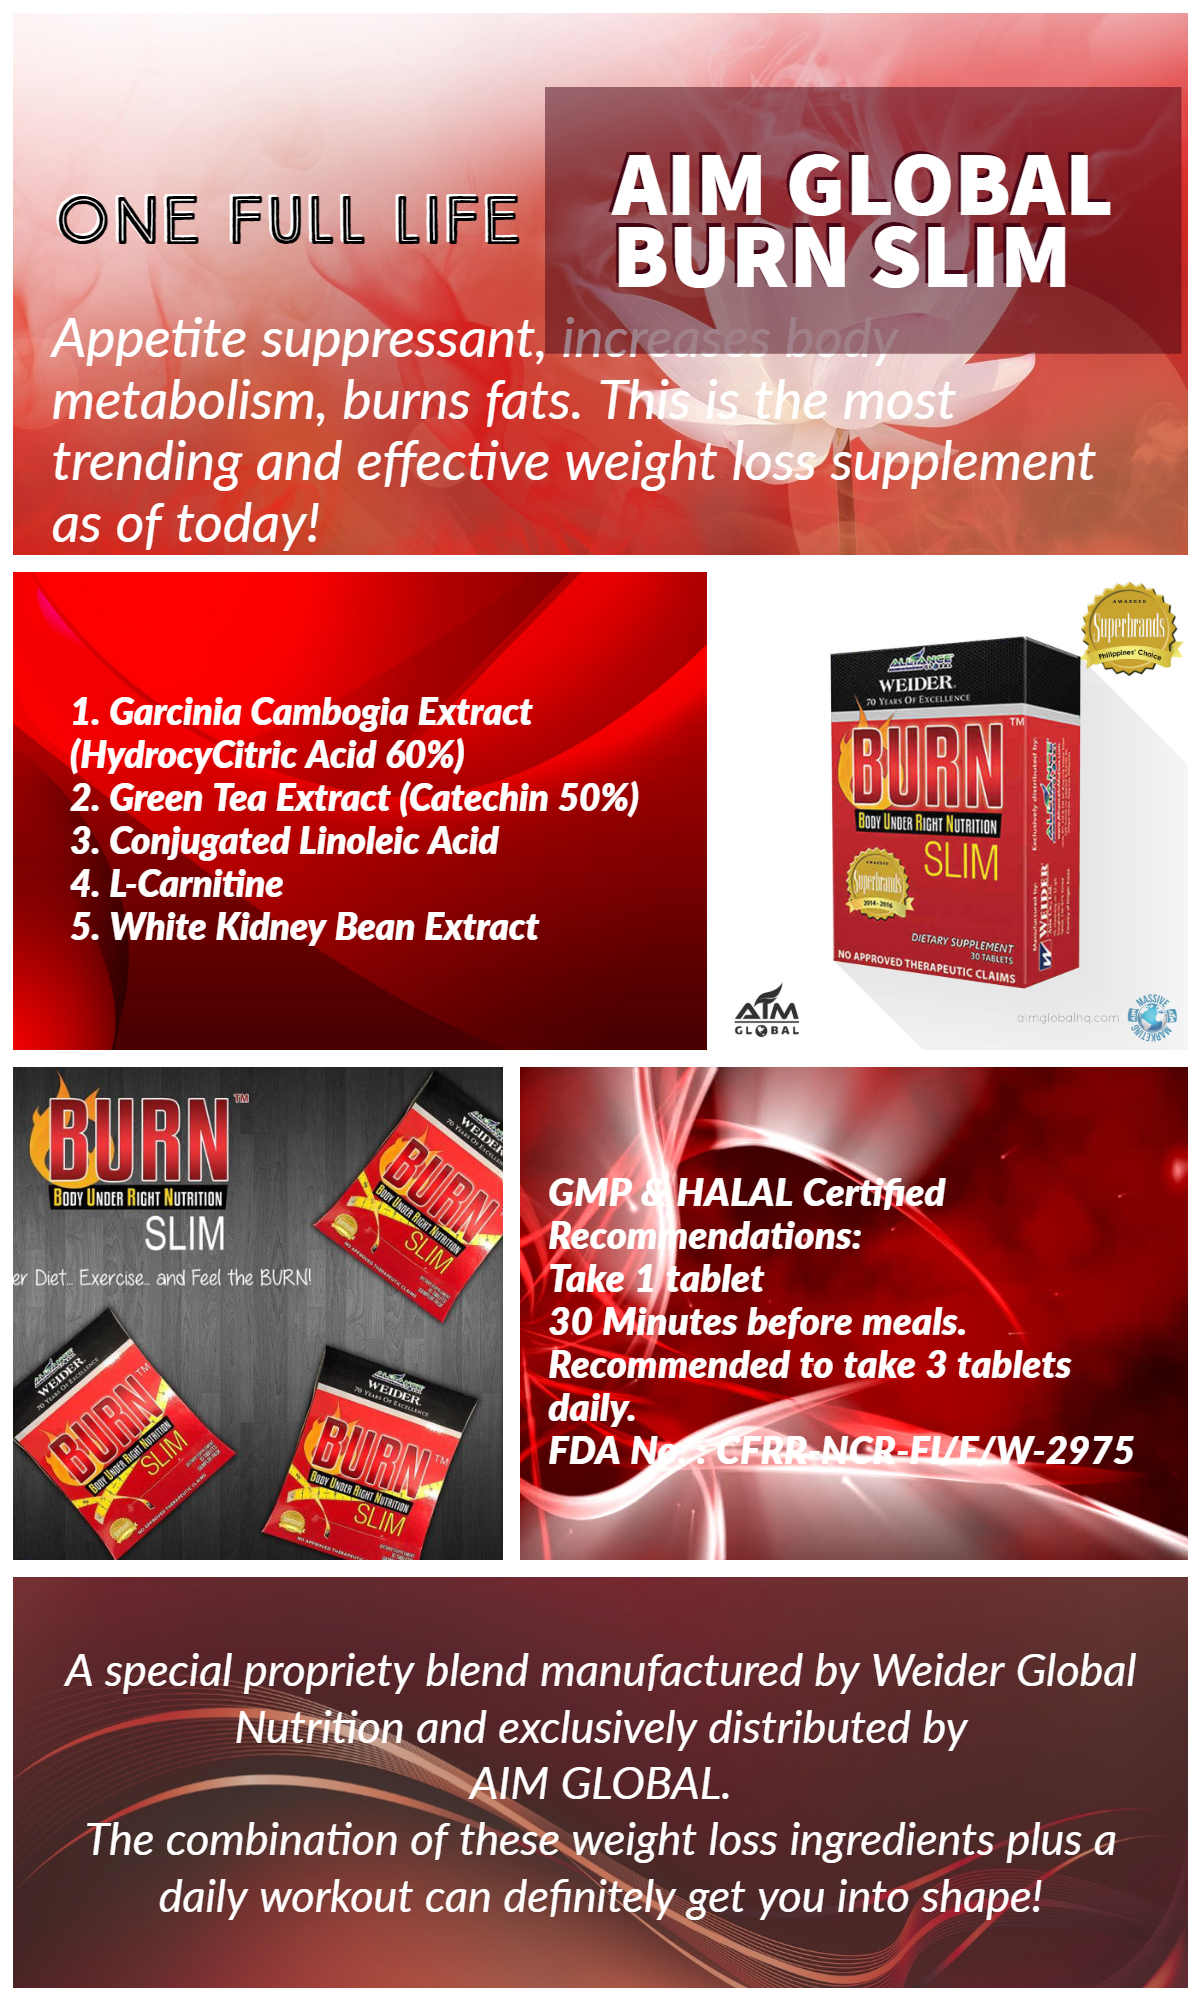 Specifications Of Aim Global Burn Slim 30 Tablets With FREE 2 Sachets Zensure Shape Up 7 Days Slimming Coffee